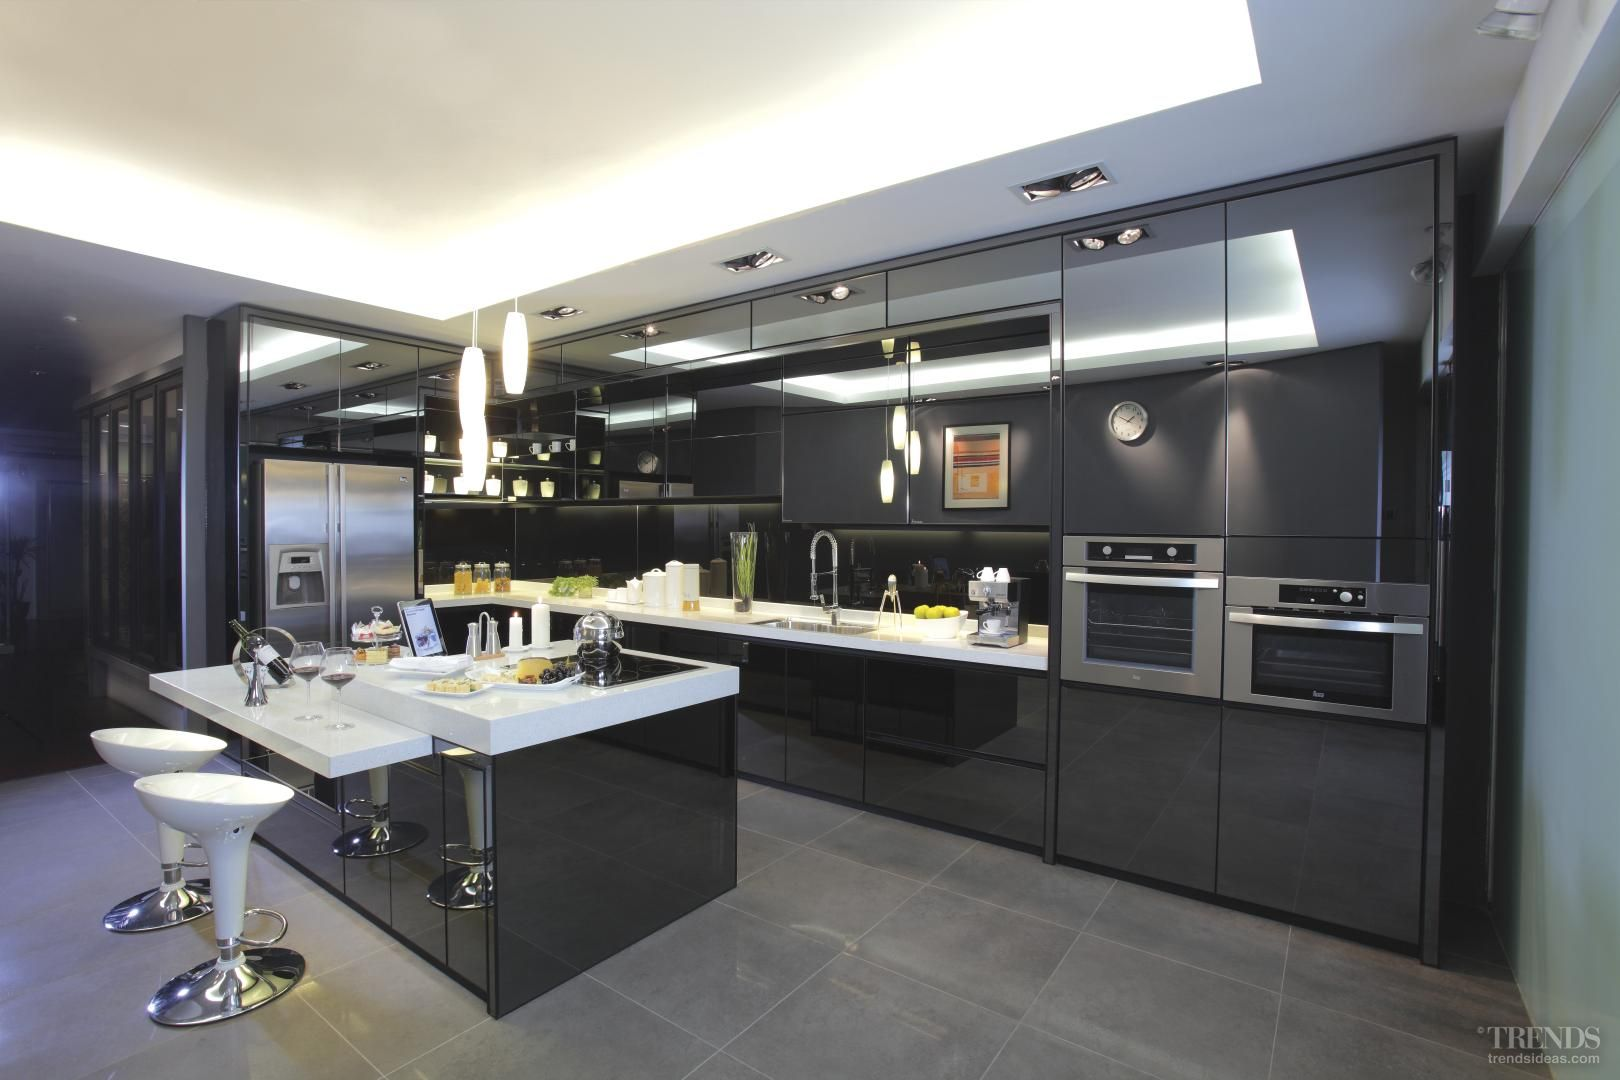 Black Is Back Apresi Kitchen In Modern Black Is A Fashion Statement